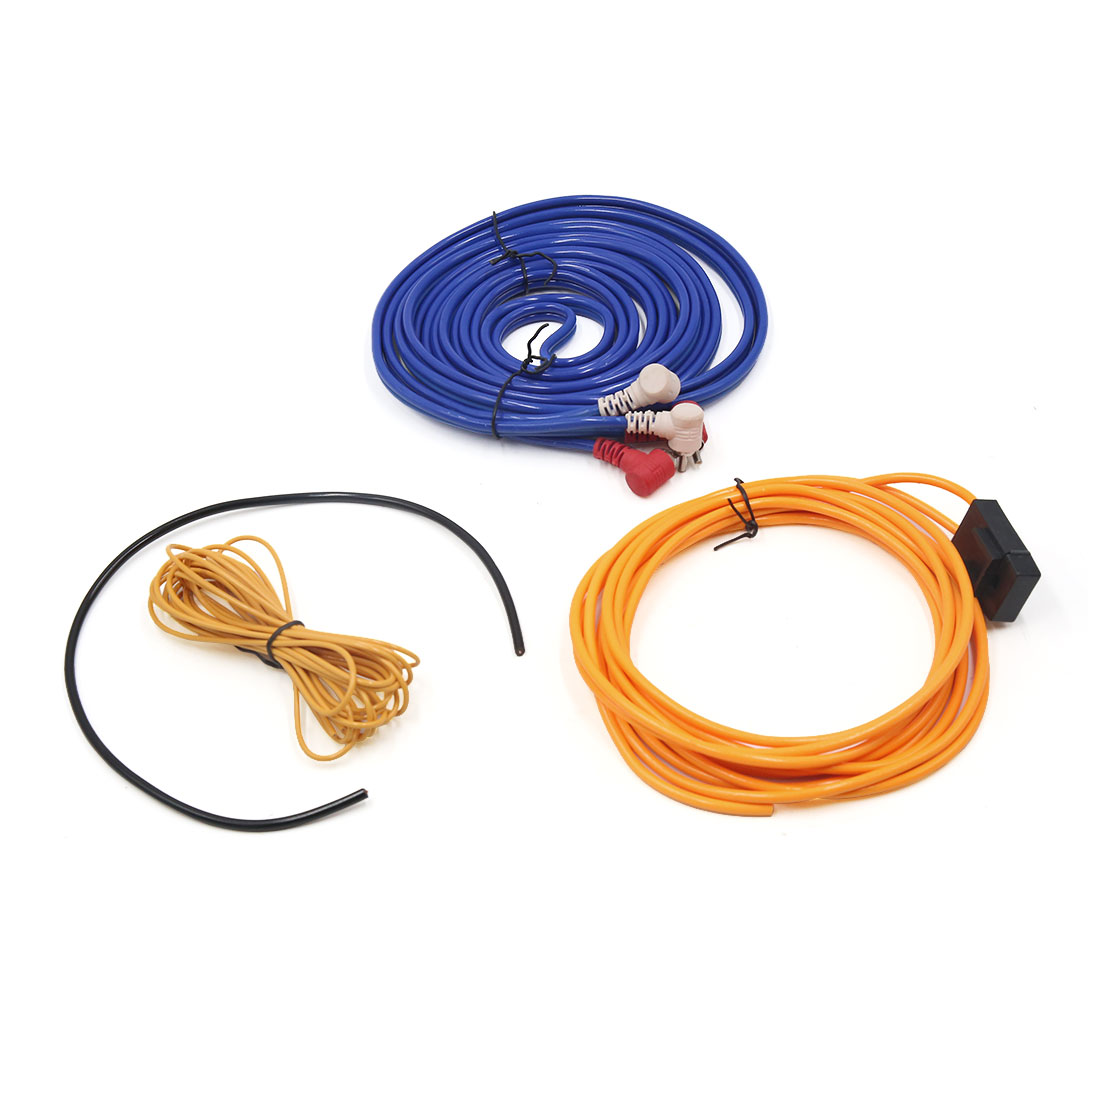 Audio Subwoofer Amplifier Wiring Fuse Holder Kit RCA Cable for Car Vehicle